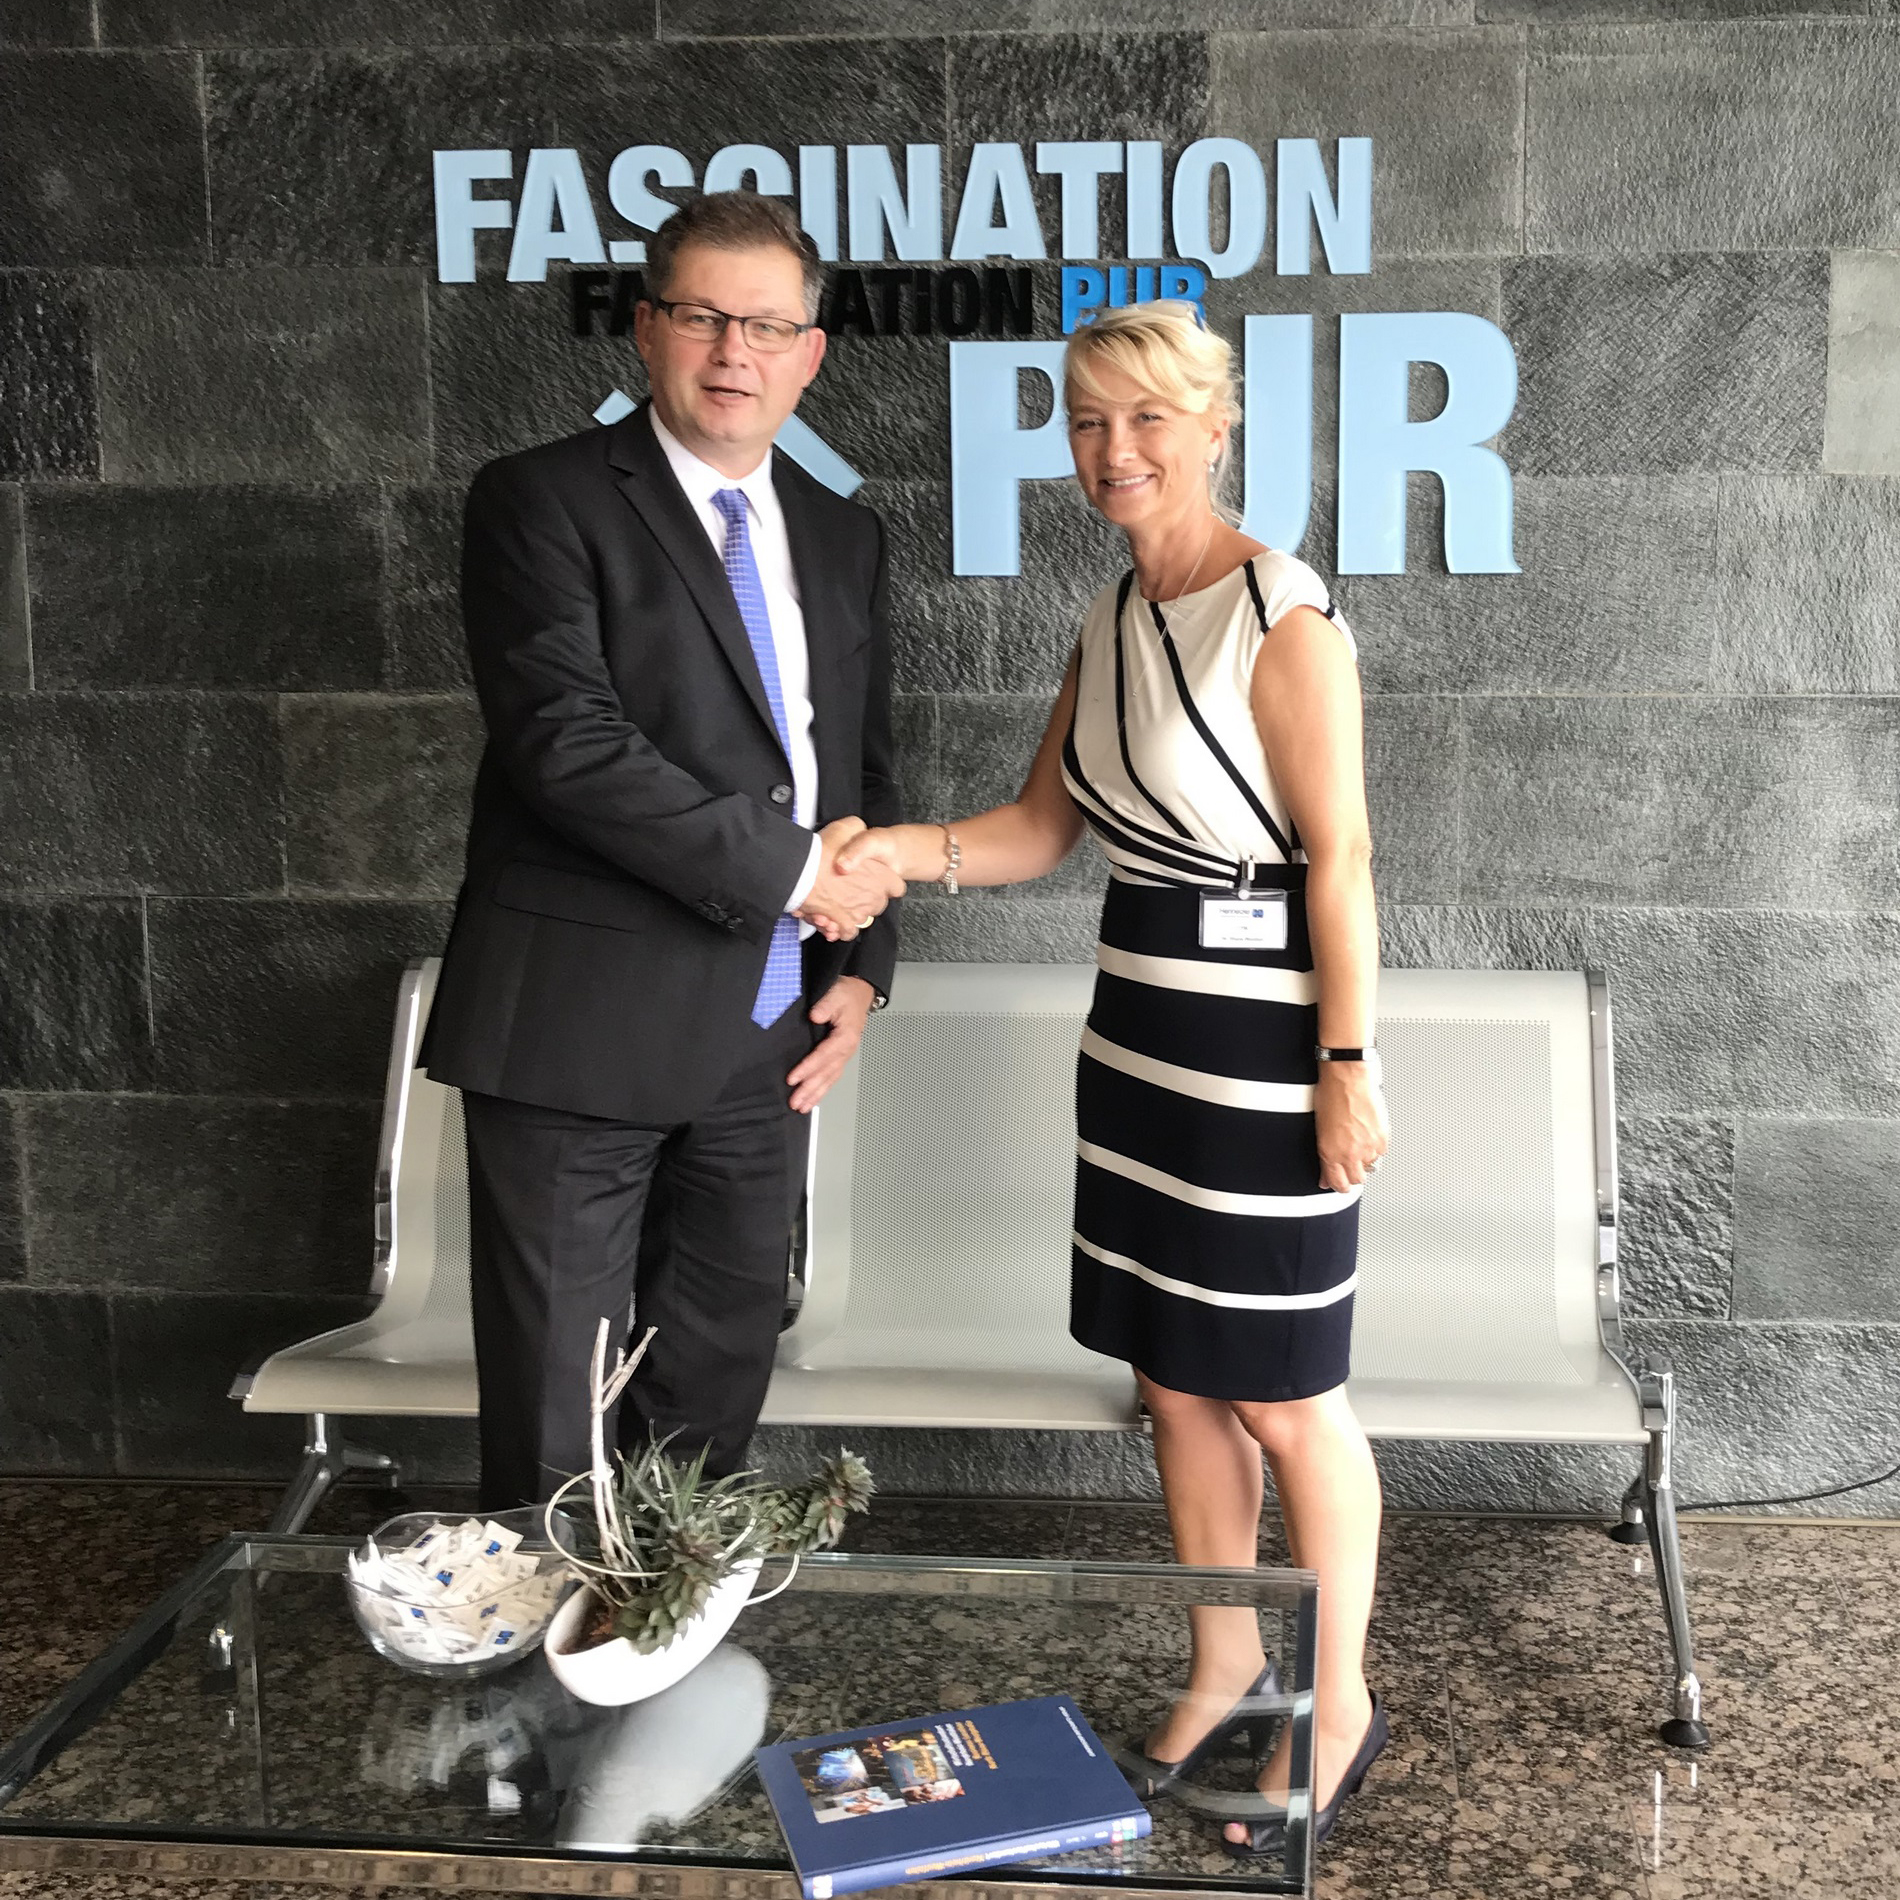 Ruth Wootton, Managing Director, CTM with Rolf Trippler, Managing Director Sales, Hennecke GmbH, at the contract signing in Sankt Augustin. (Source: Hennecke)